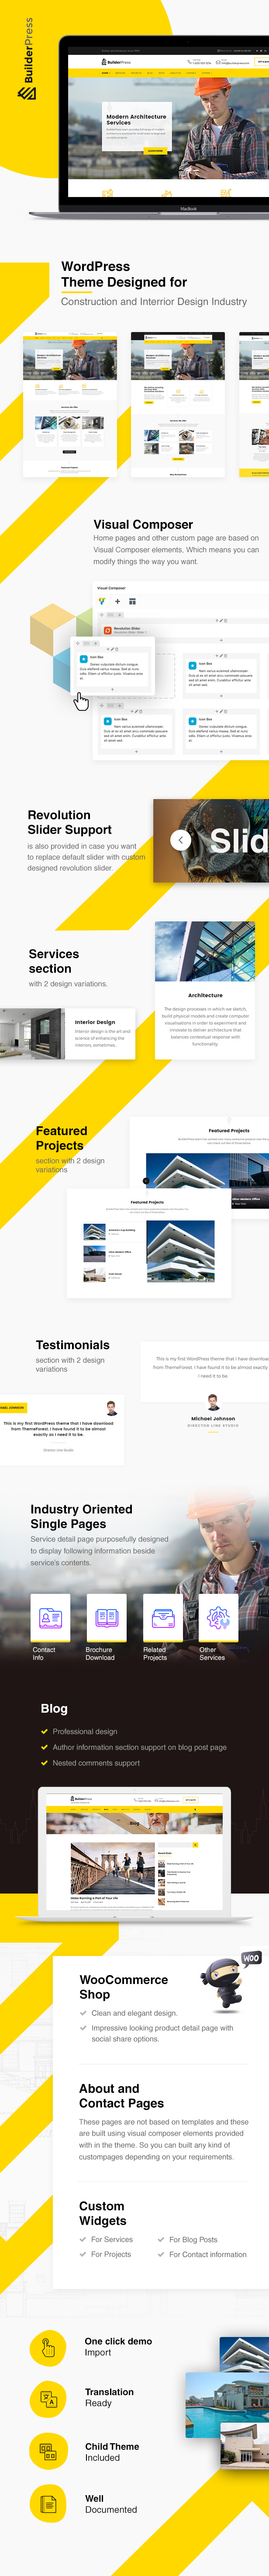 BuilderPress - WordPress Theme for Construction, Architecture and Interior Design Industry